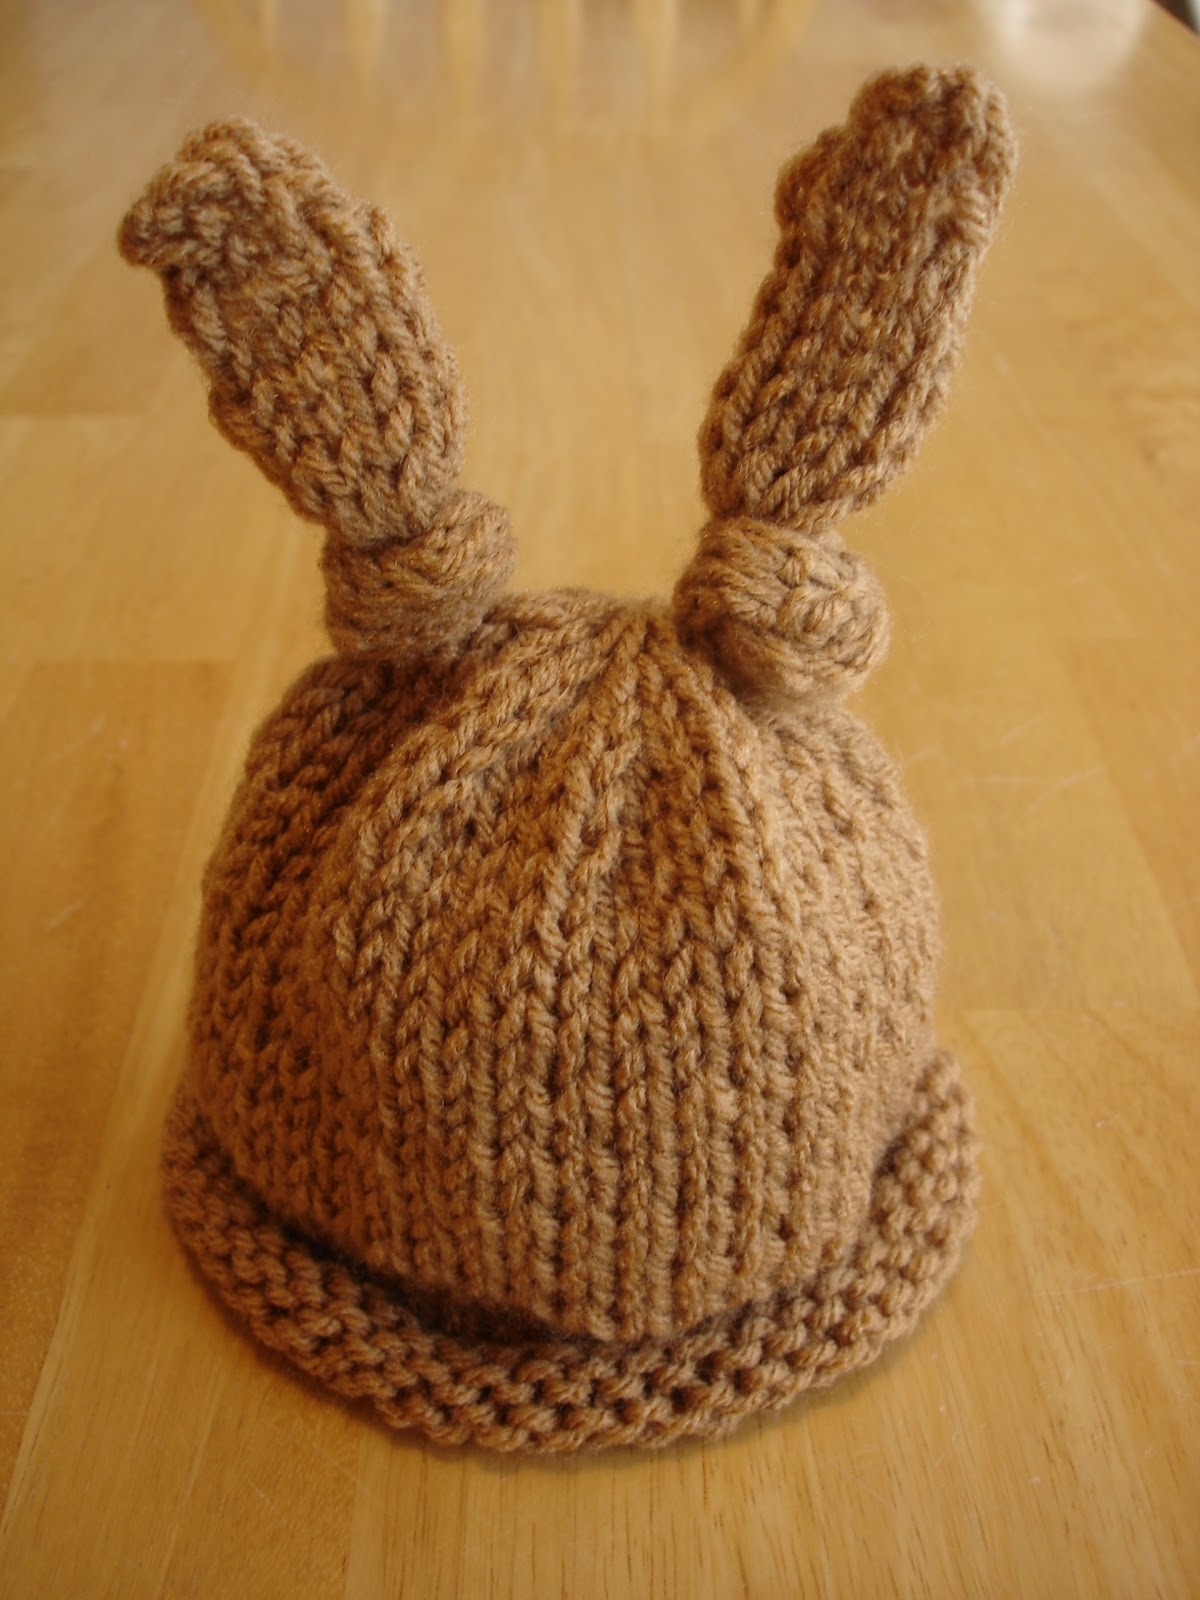 Free Knitting Pattern For Baby Hats : Fiber Flux: Free Knitting Pattern...Baby Bunny Newborn or Preemie Hat!